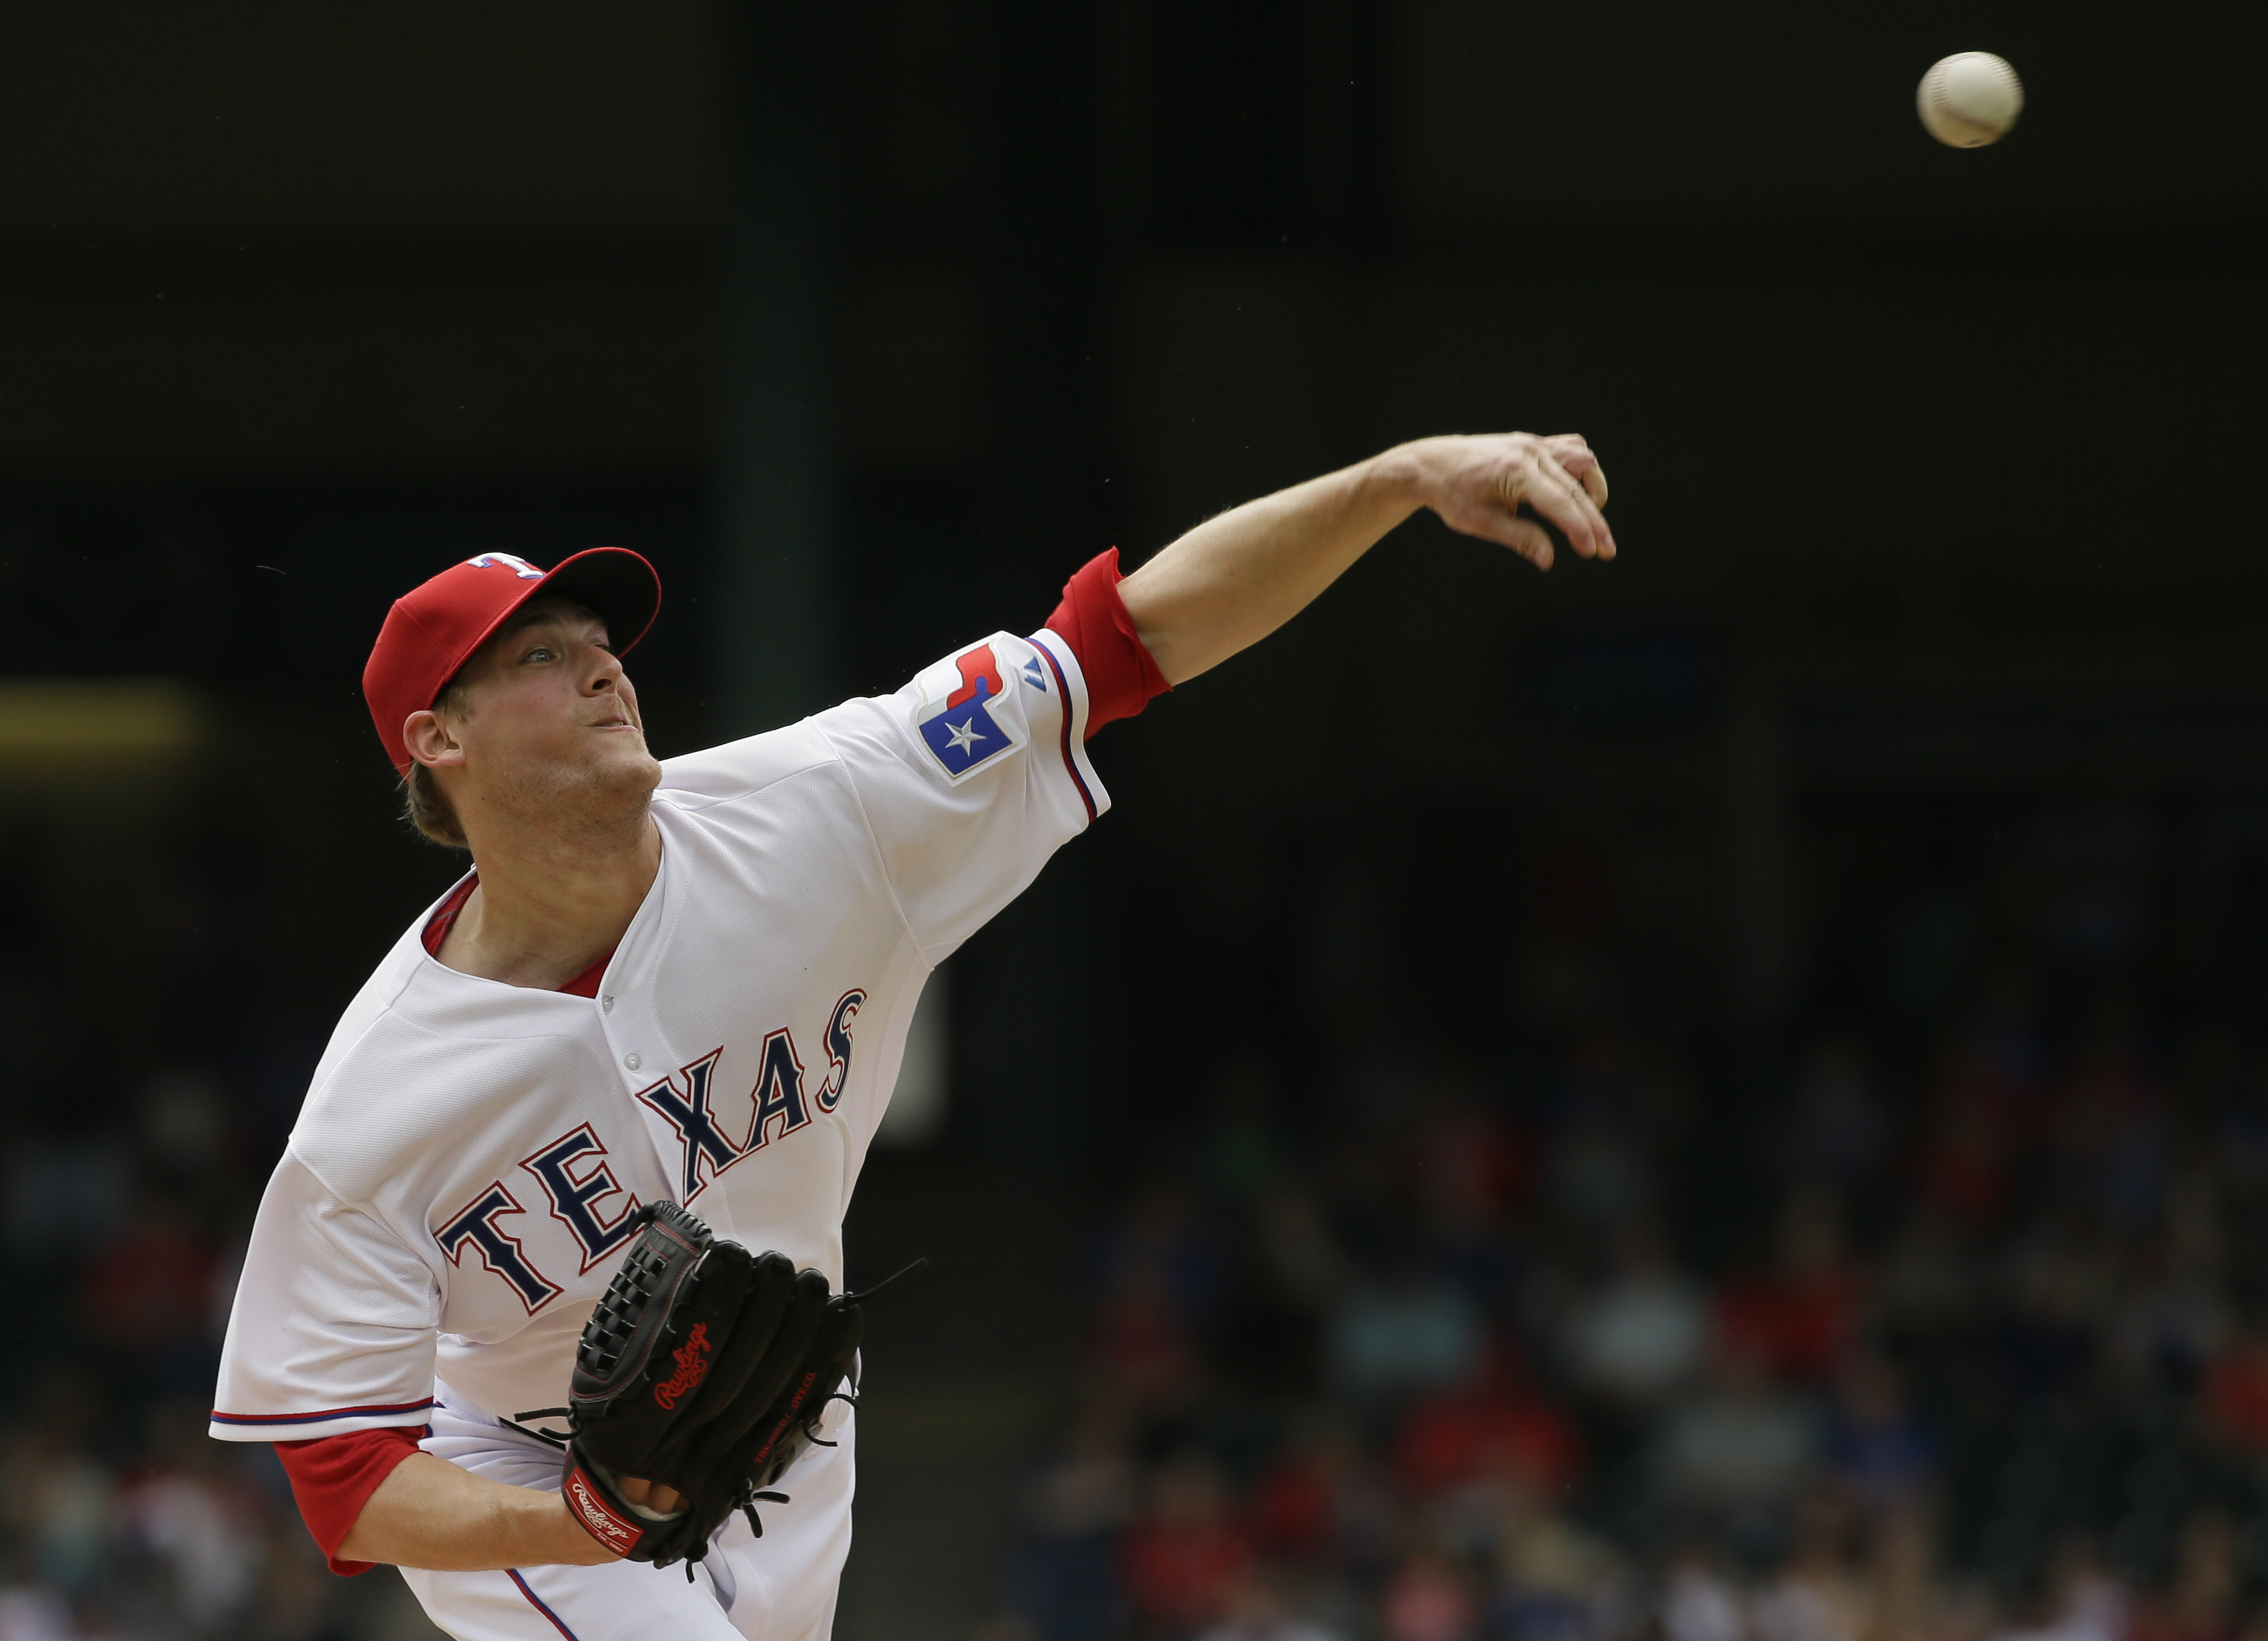 Texas Rangers starting pitcher Ross Detwiler throws during the first inning of a baseball game against the Kansas City Royals in Arlington, Texas, Thursday, May 14, 2015. (AP Photo/LM Otero)